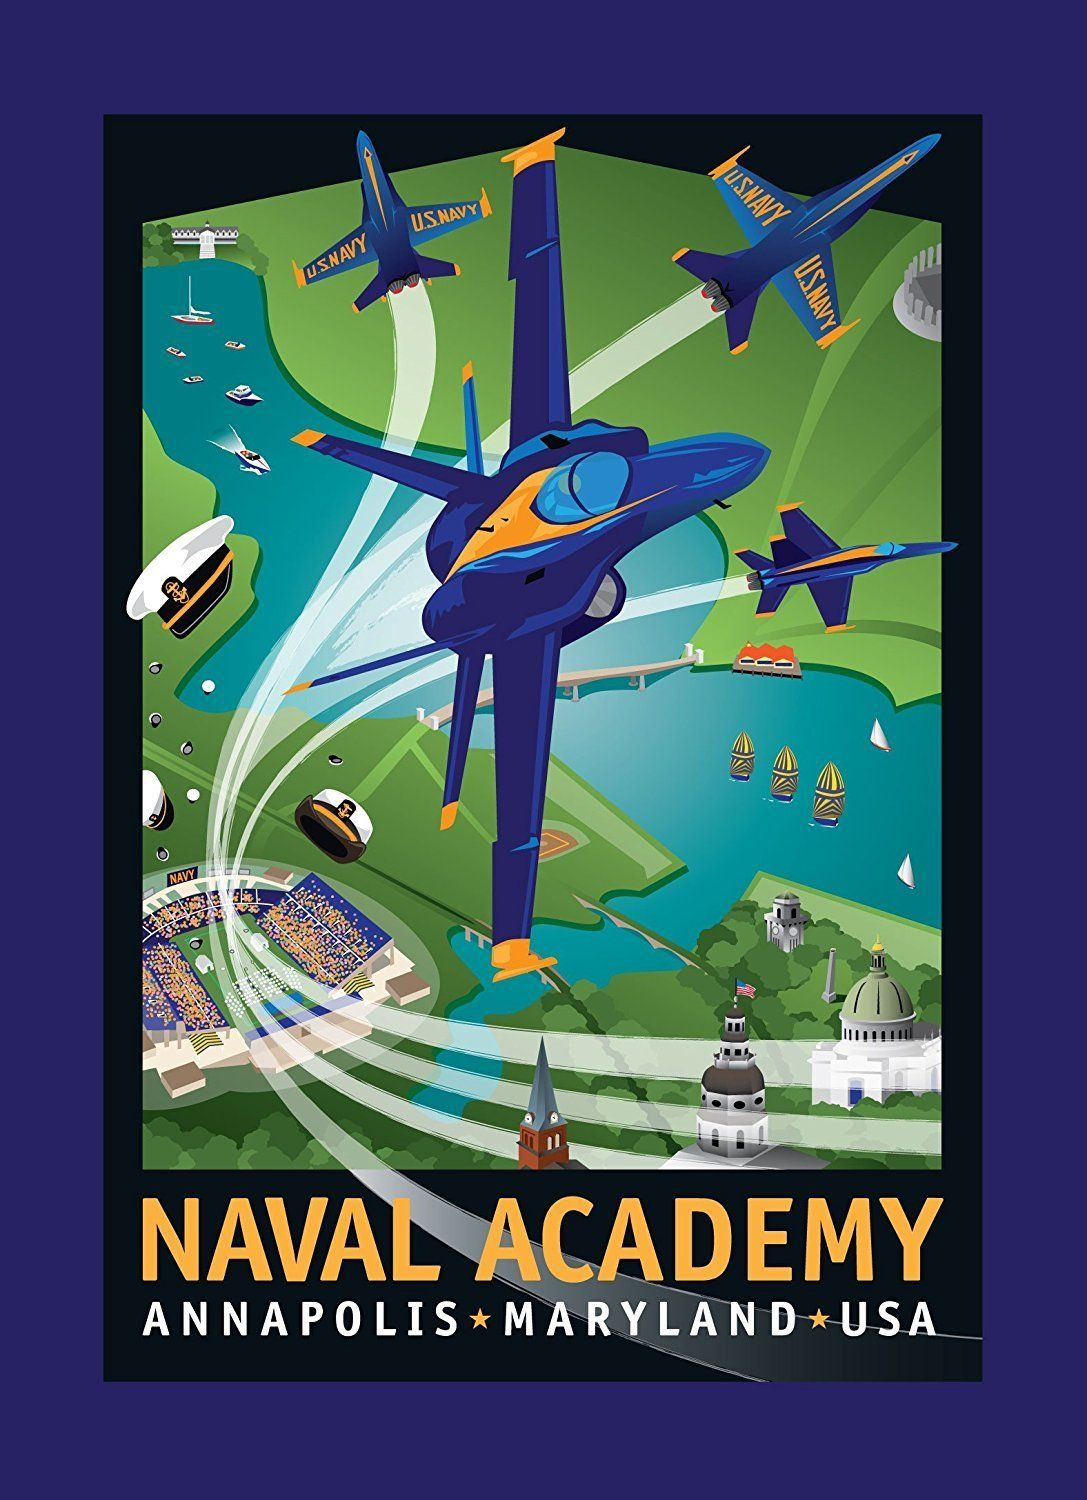 Blue Angels Naval Academy Notecard by Joe Barsin, 5x7